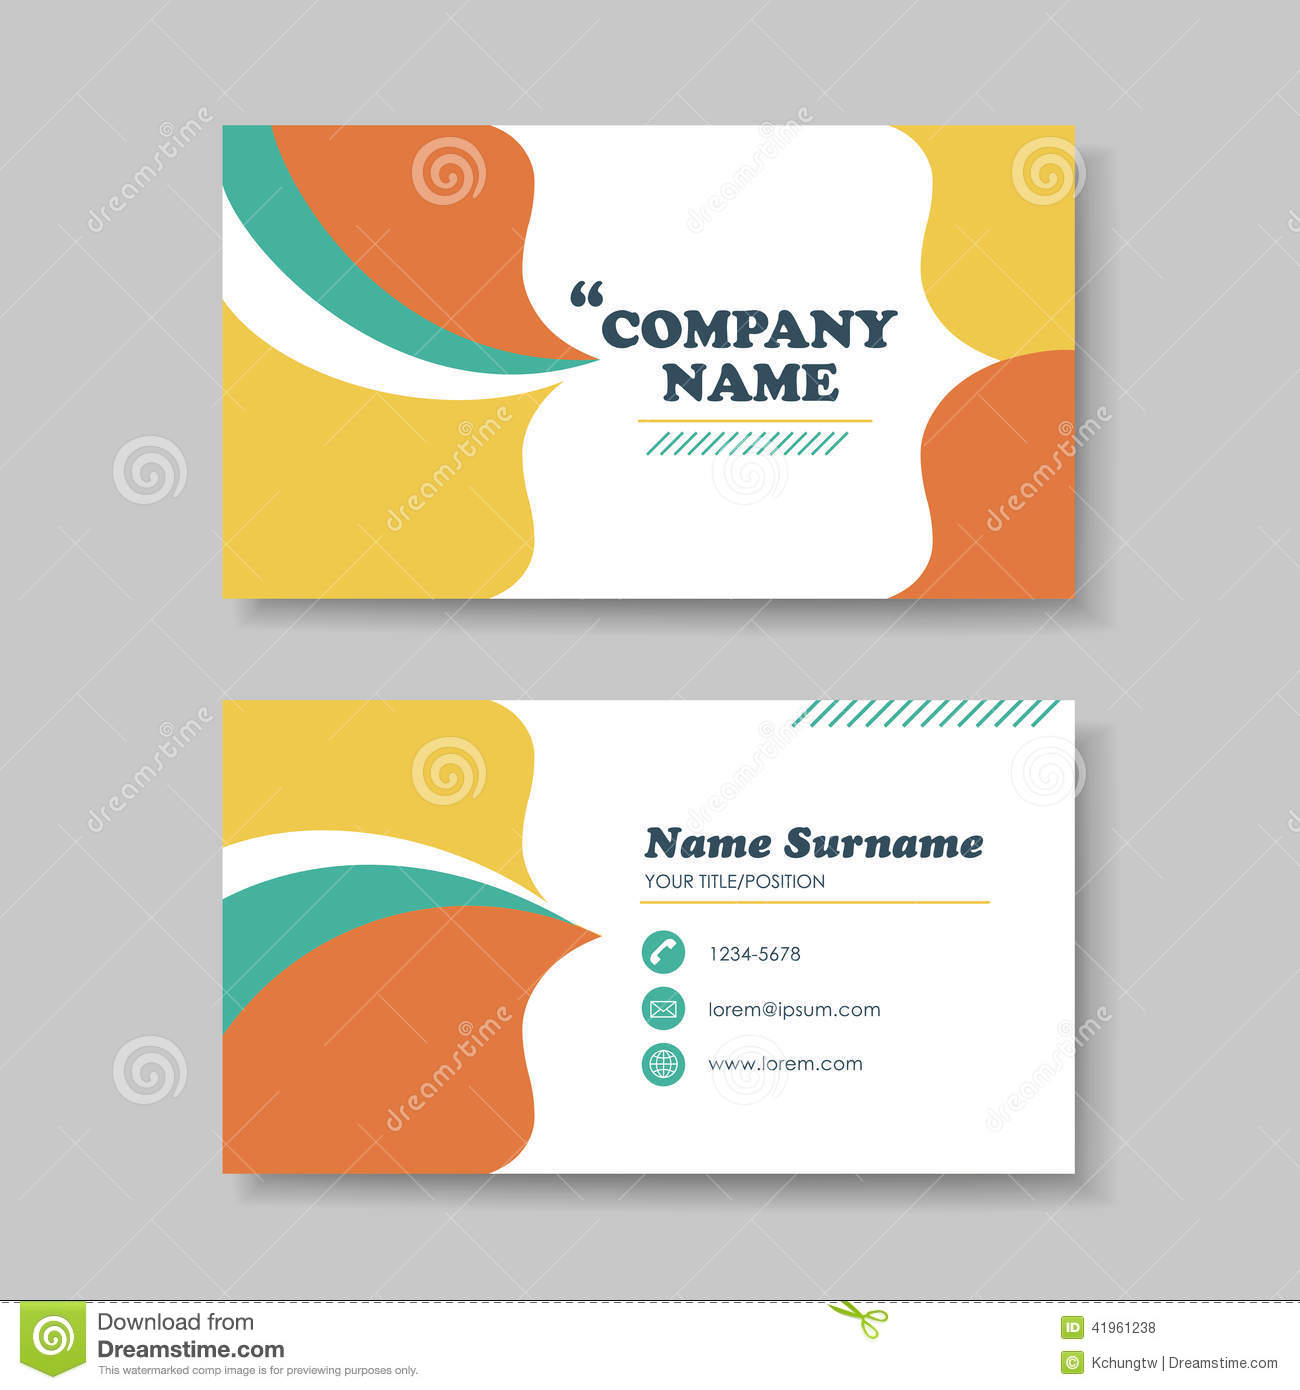 Free vector business card templates business card design for Business card eps template